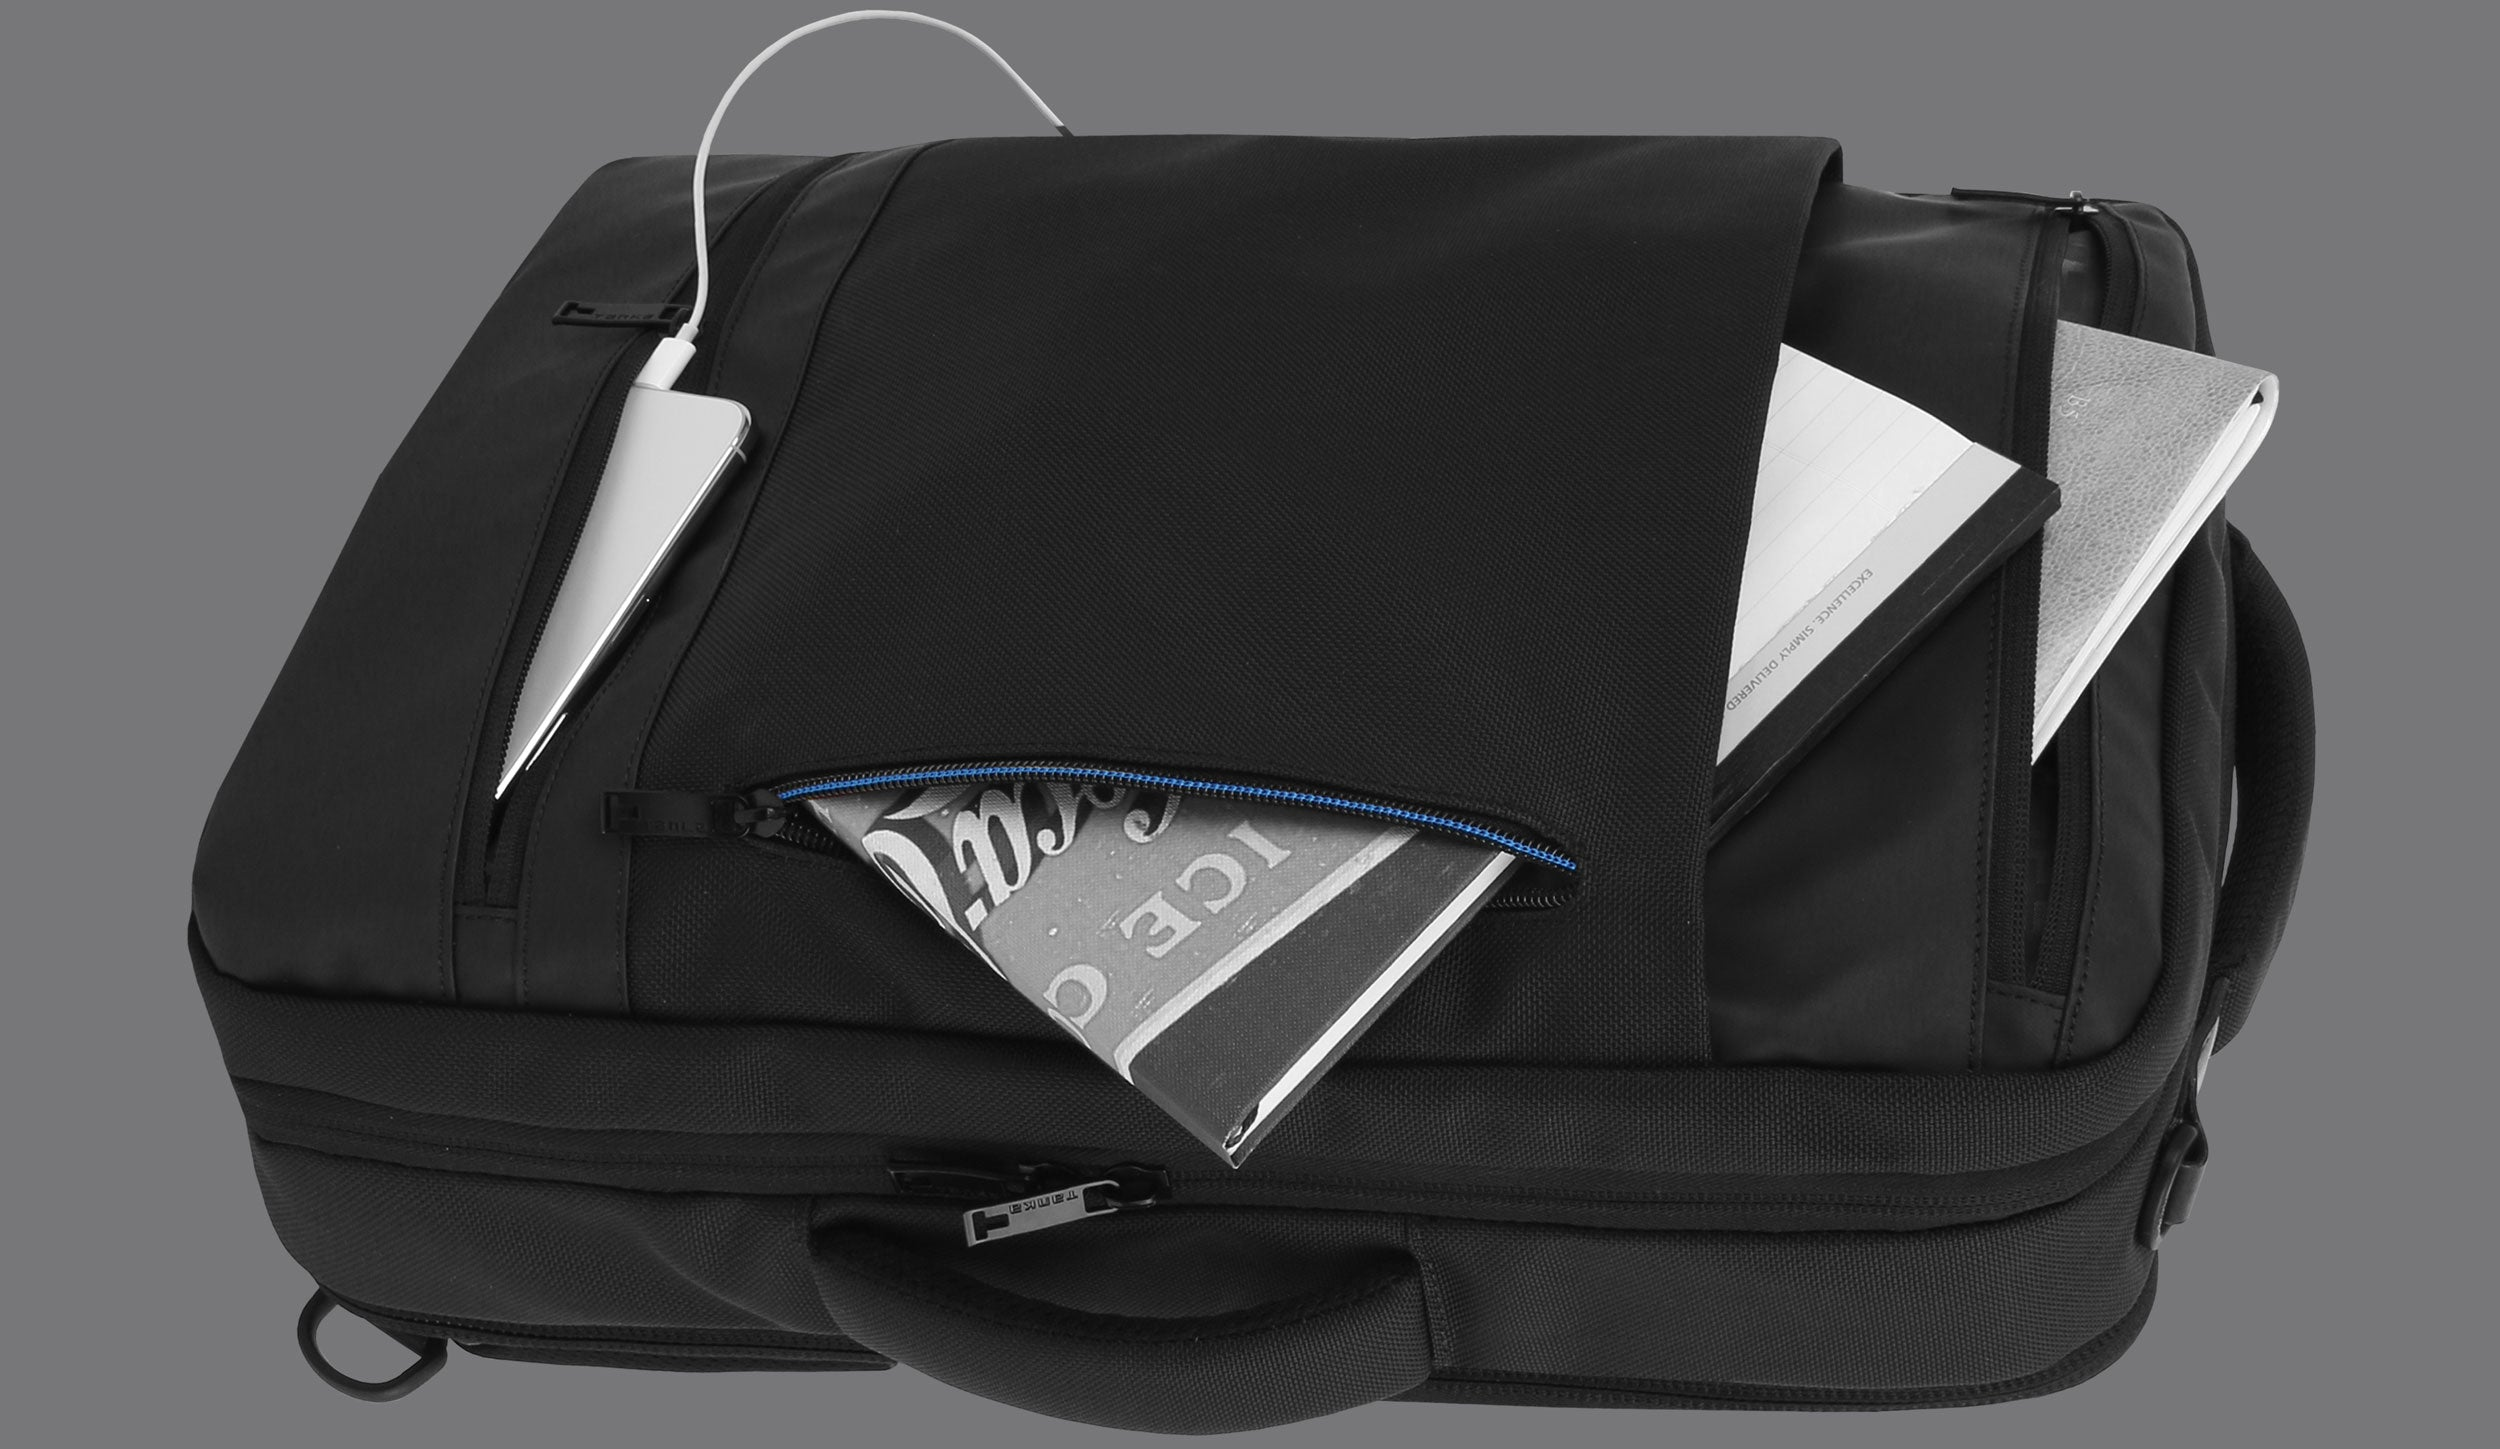 CONVENIENTLY LOCATED UTILITY POCKETS AND ORGANIZERS INSIDE